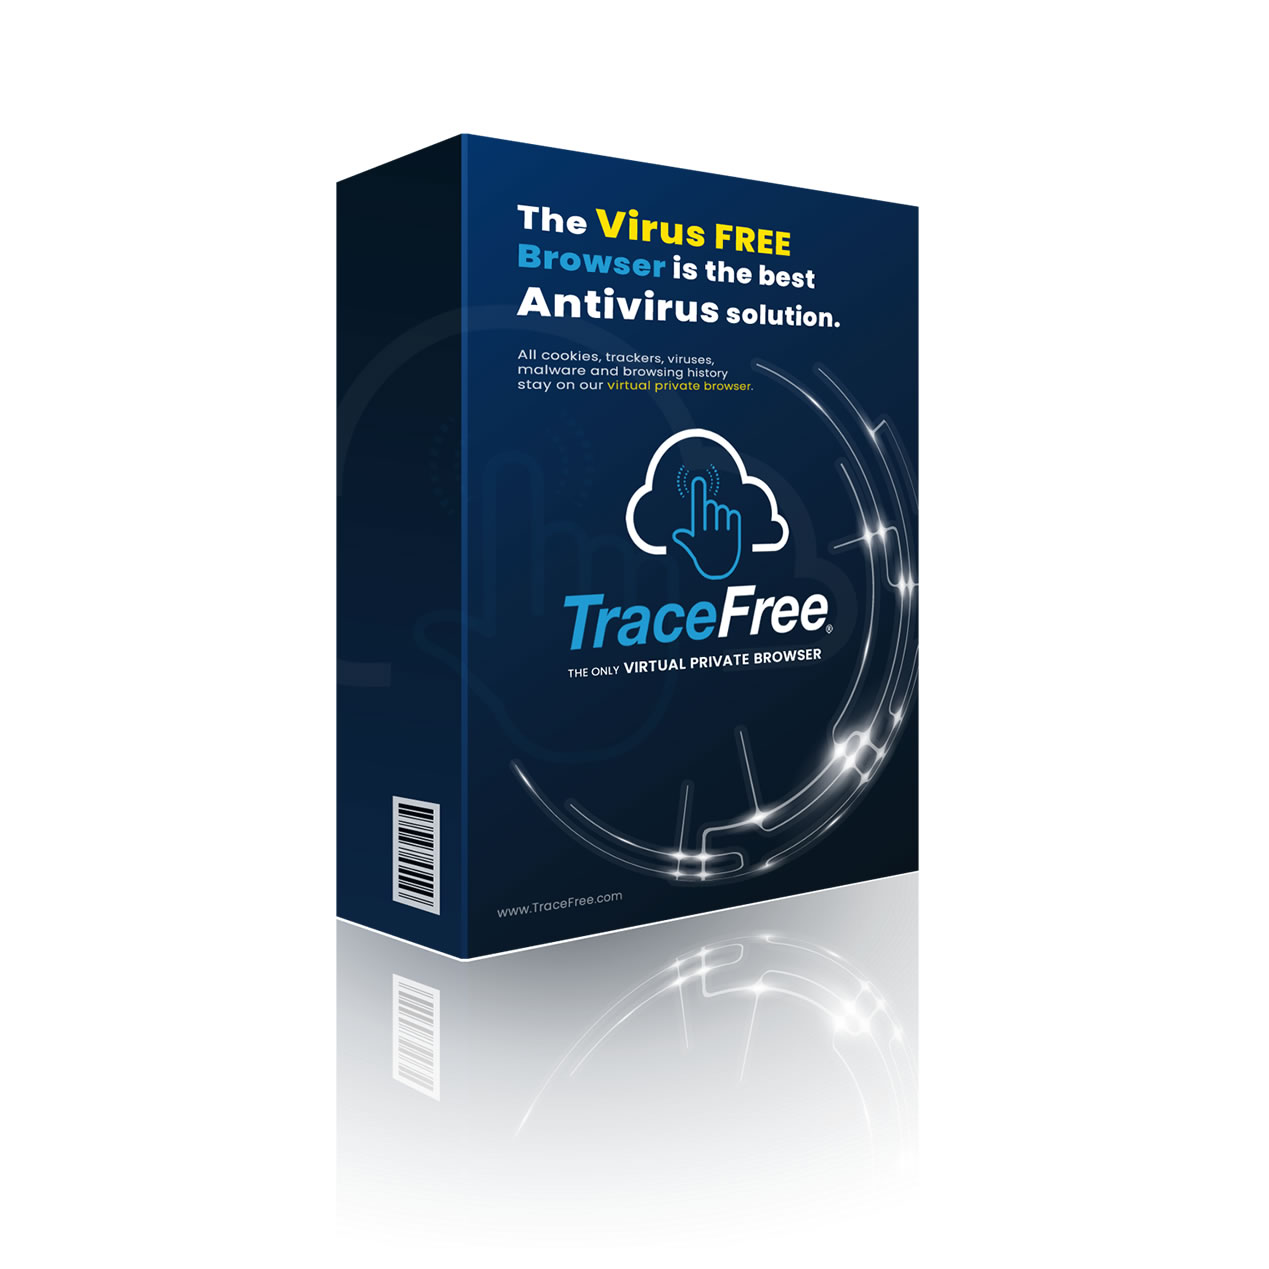 Top Antivirus Solutions According to TechRadar or Compare them to Trace Free the only Virtual Private Browser